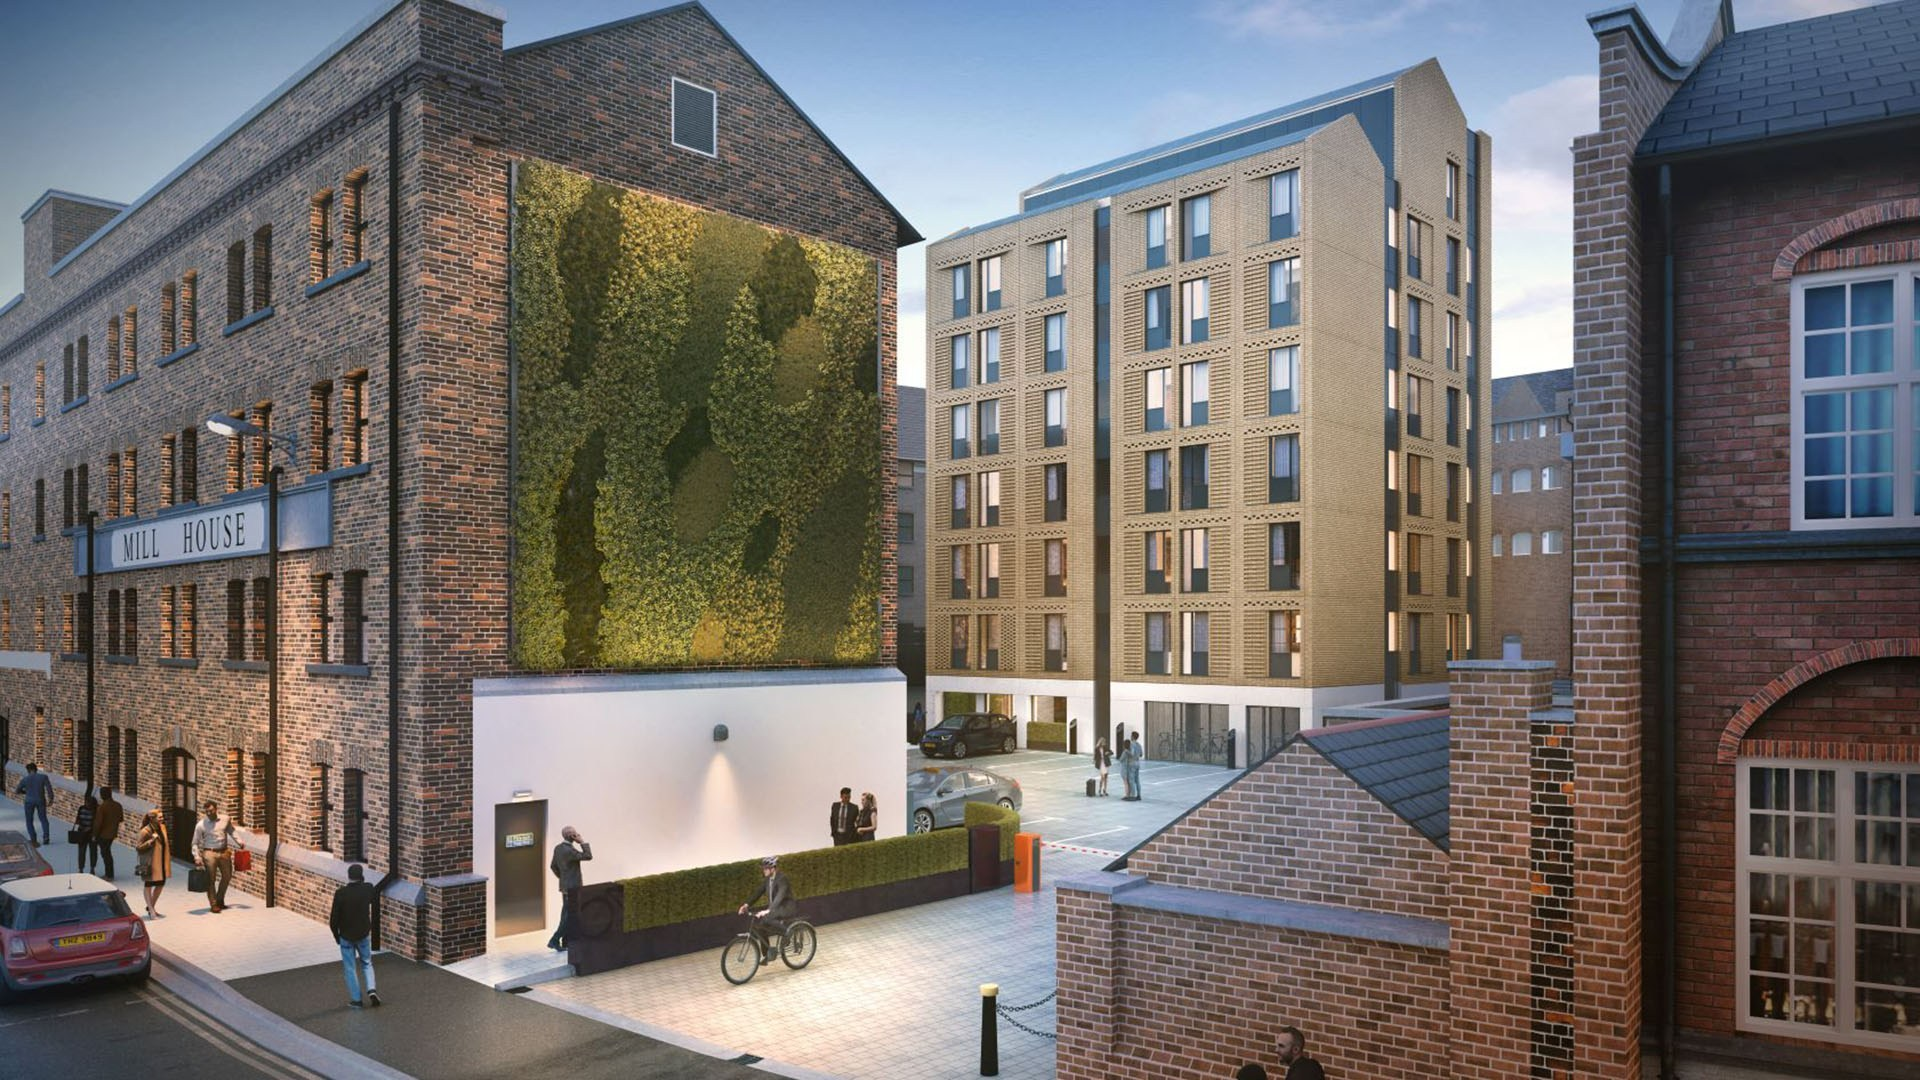 UK Property Investment Firm Unveils Plans for Zero Carbon Hotel